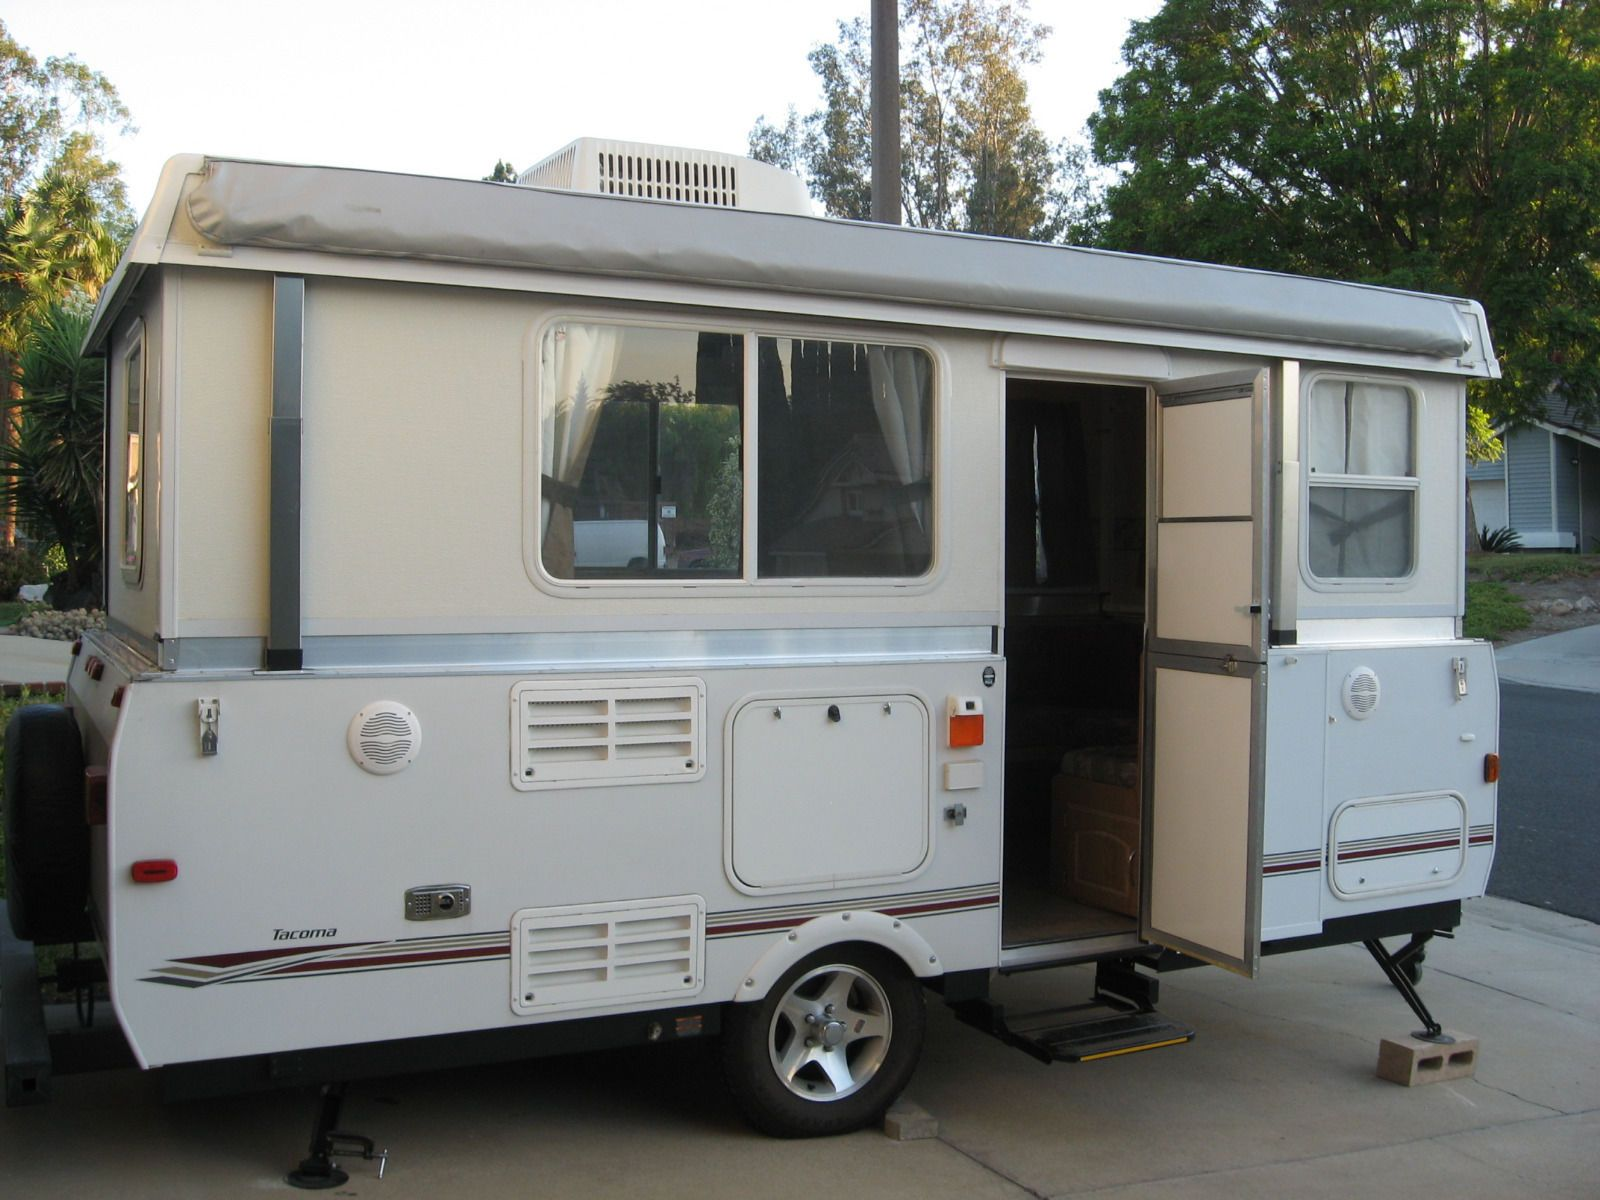 Convert Pop Up Camper To Travel Trailer Tiny House Designs The